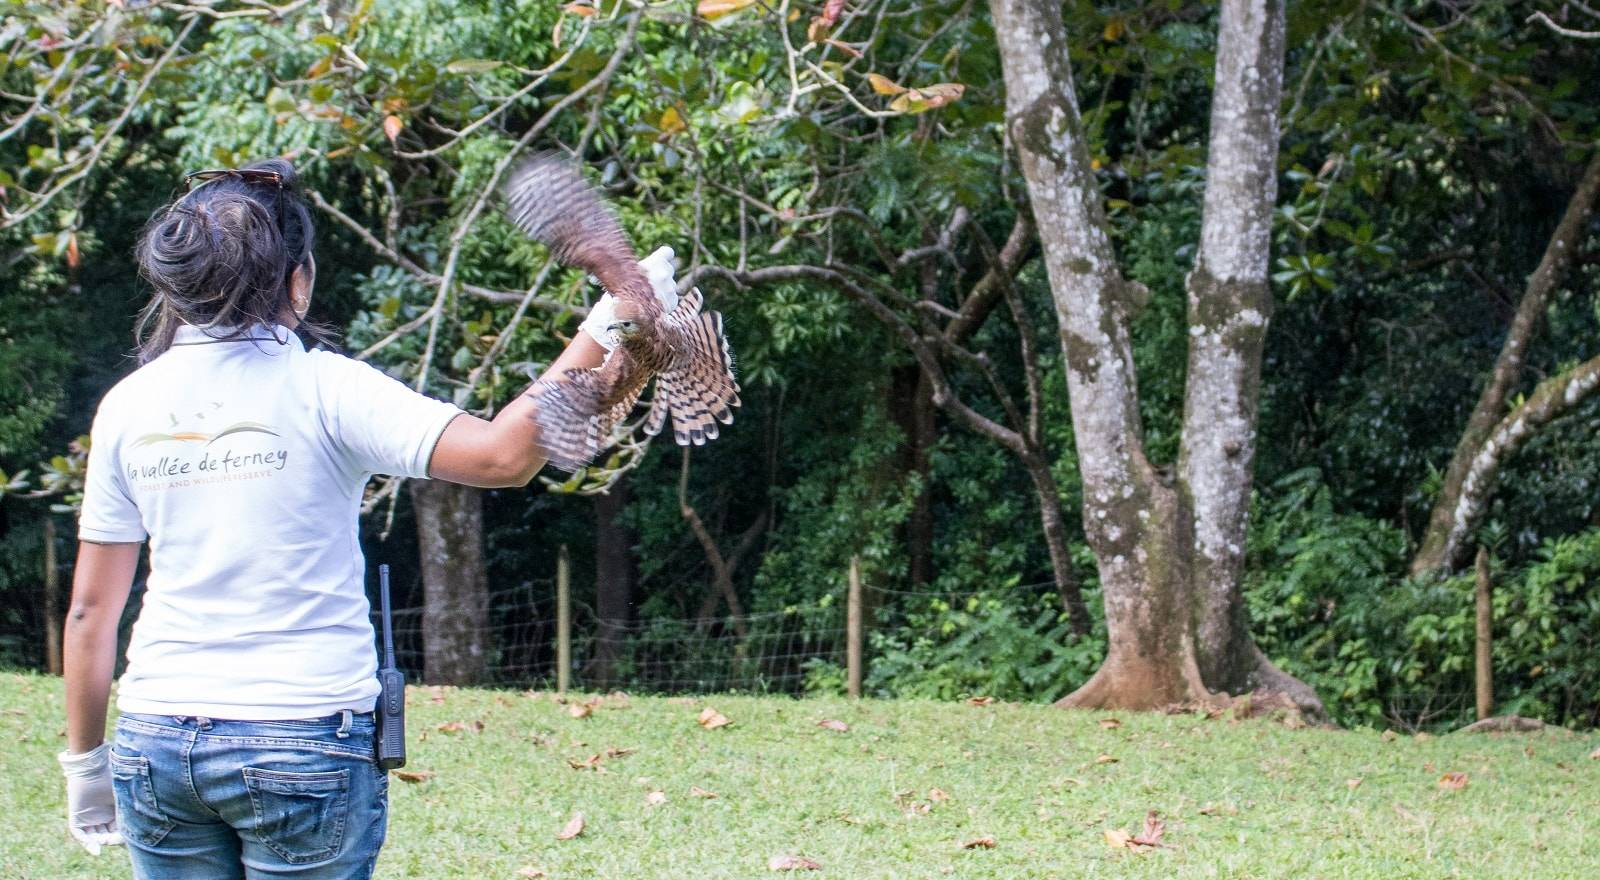 Kestrel Feeding at  La Vallée de Ferney - One of the last natural sanctuaries in Mauritius